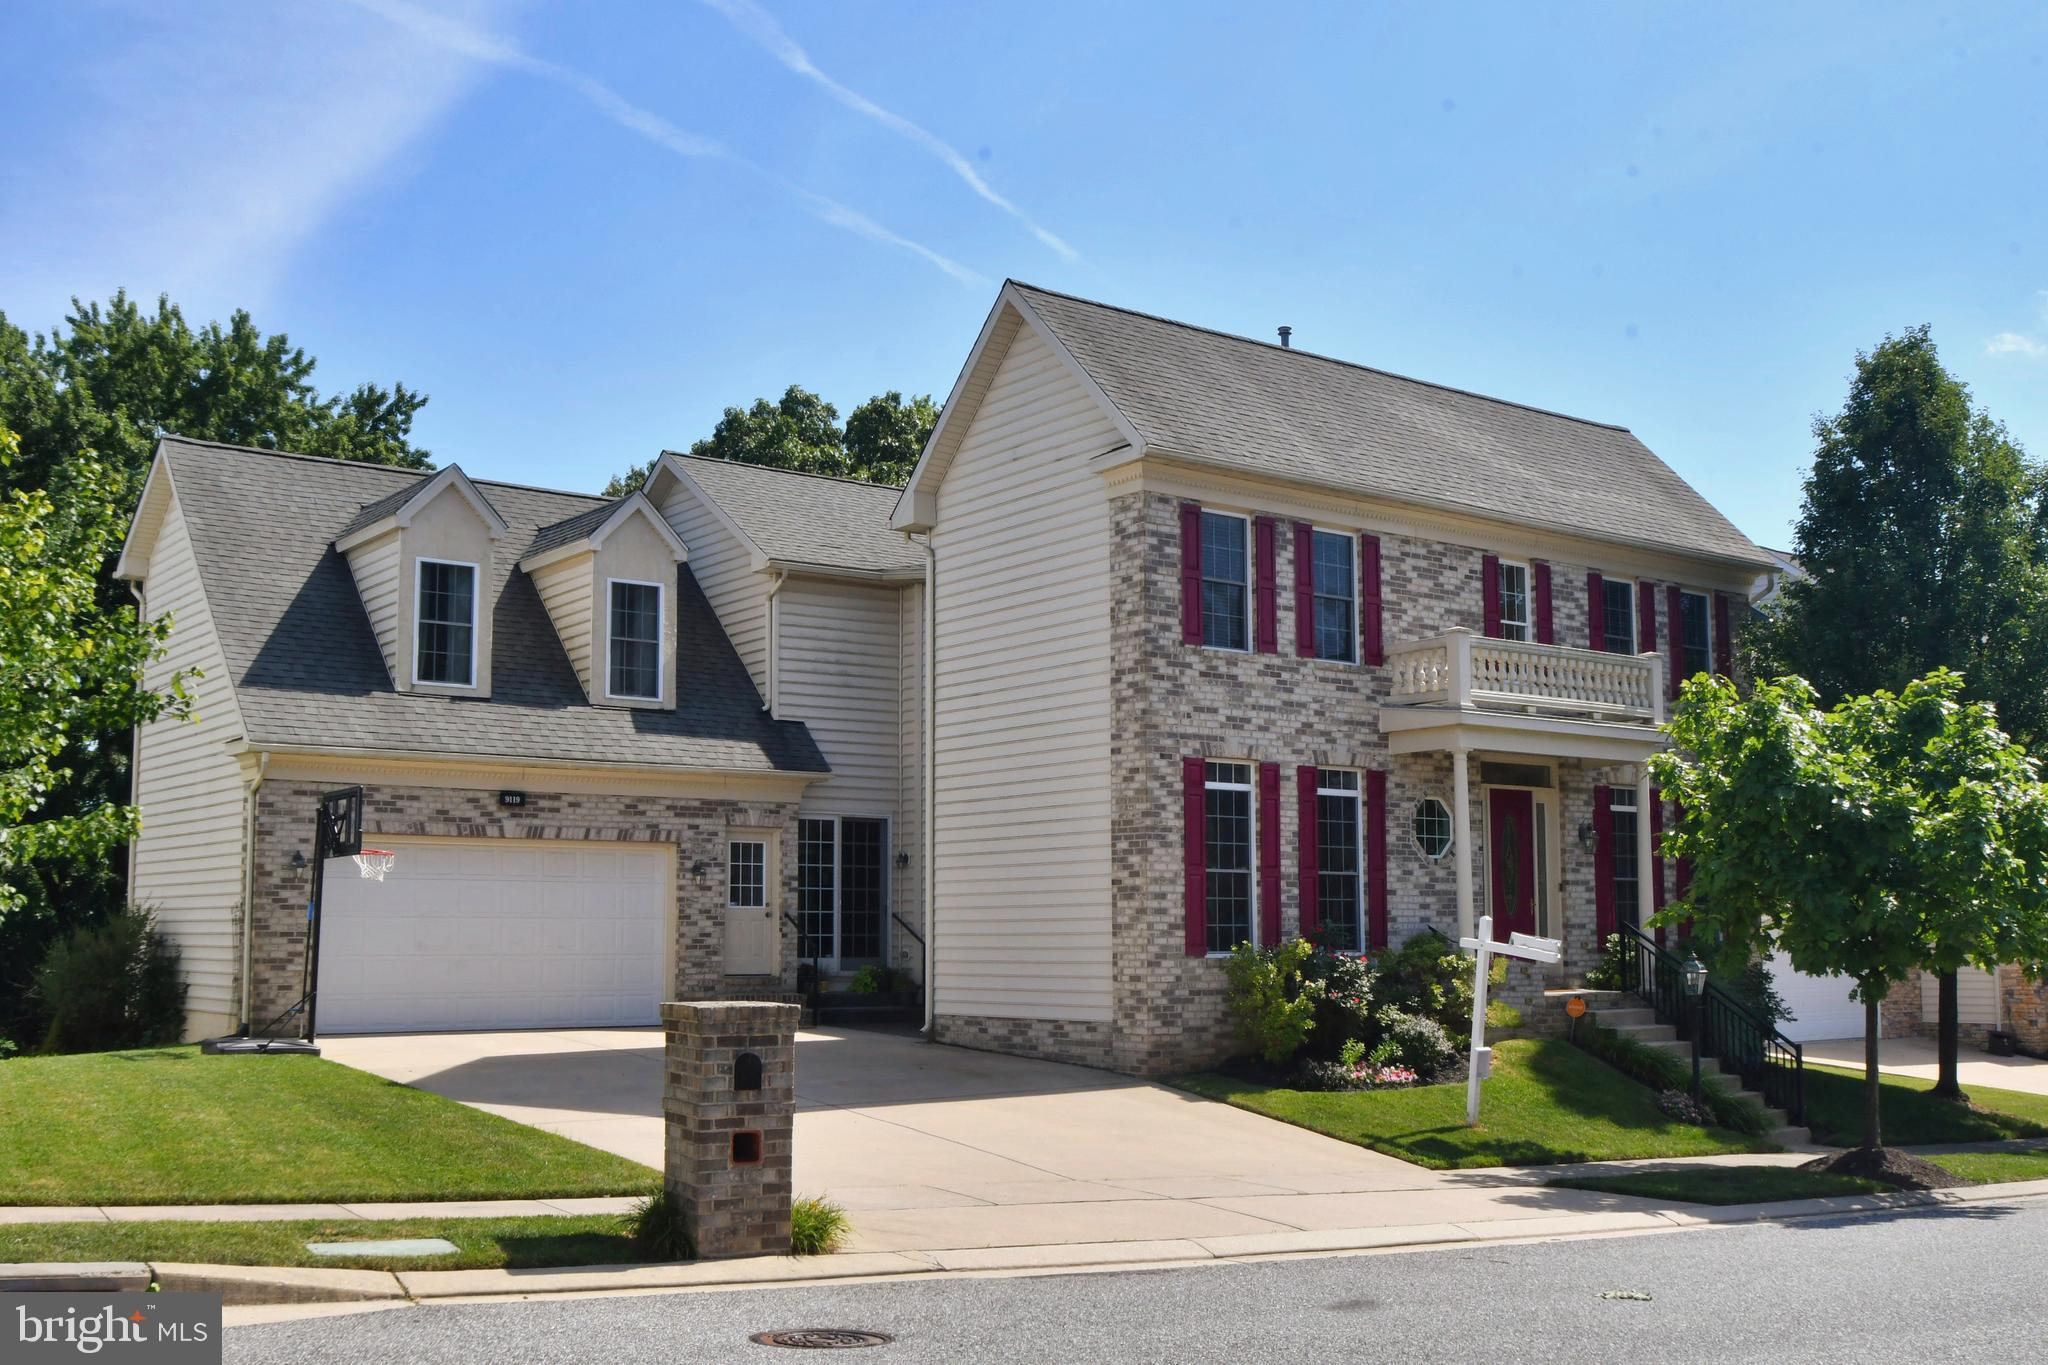 9119 PANORAMA DRIVE, PERRY HALL, MD 21128